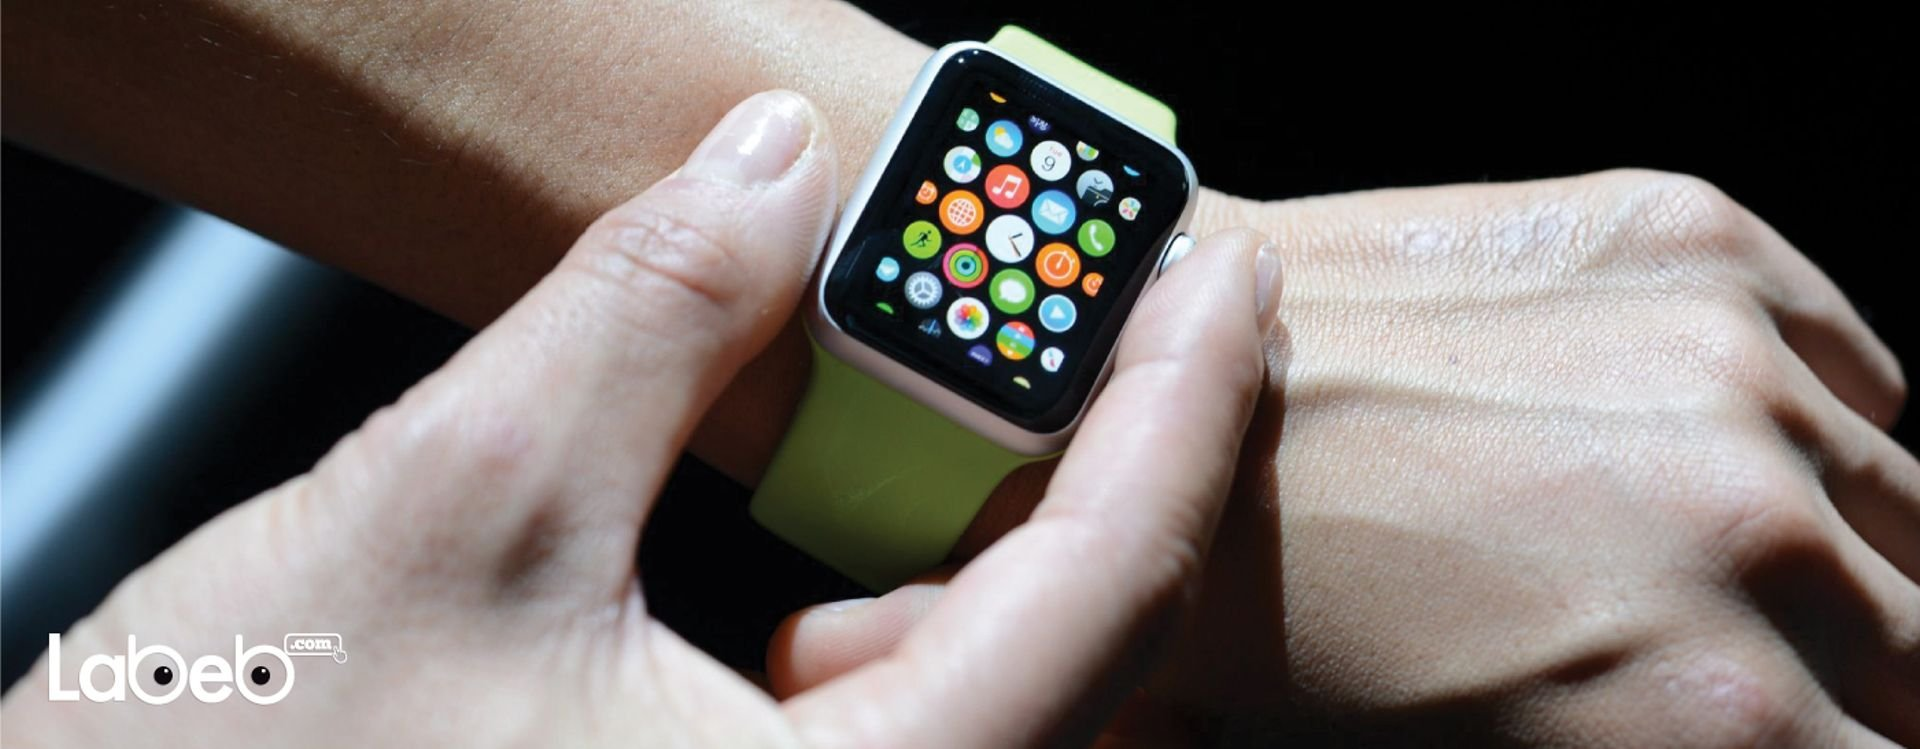 Apple and Samsung Compete in the smart watch market as well